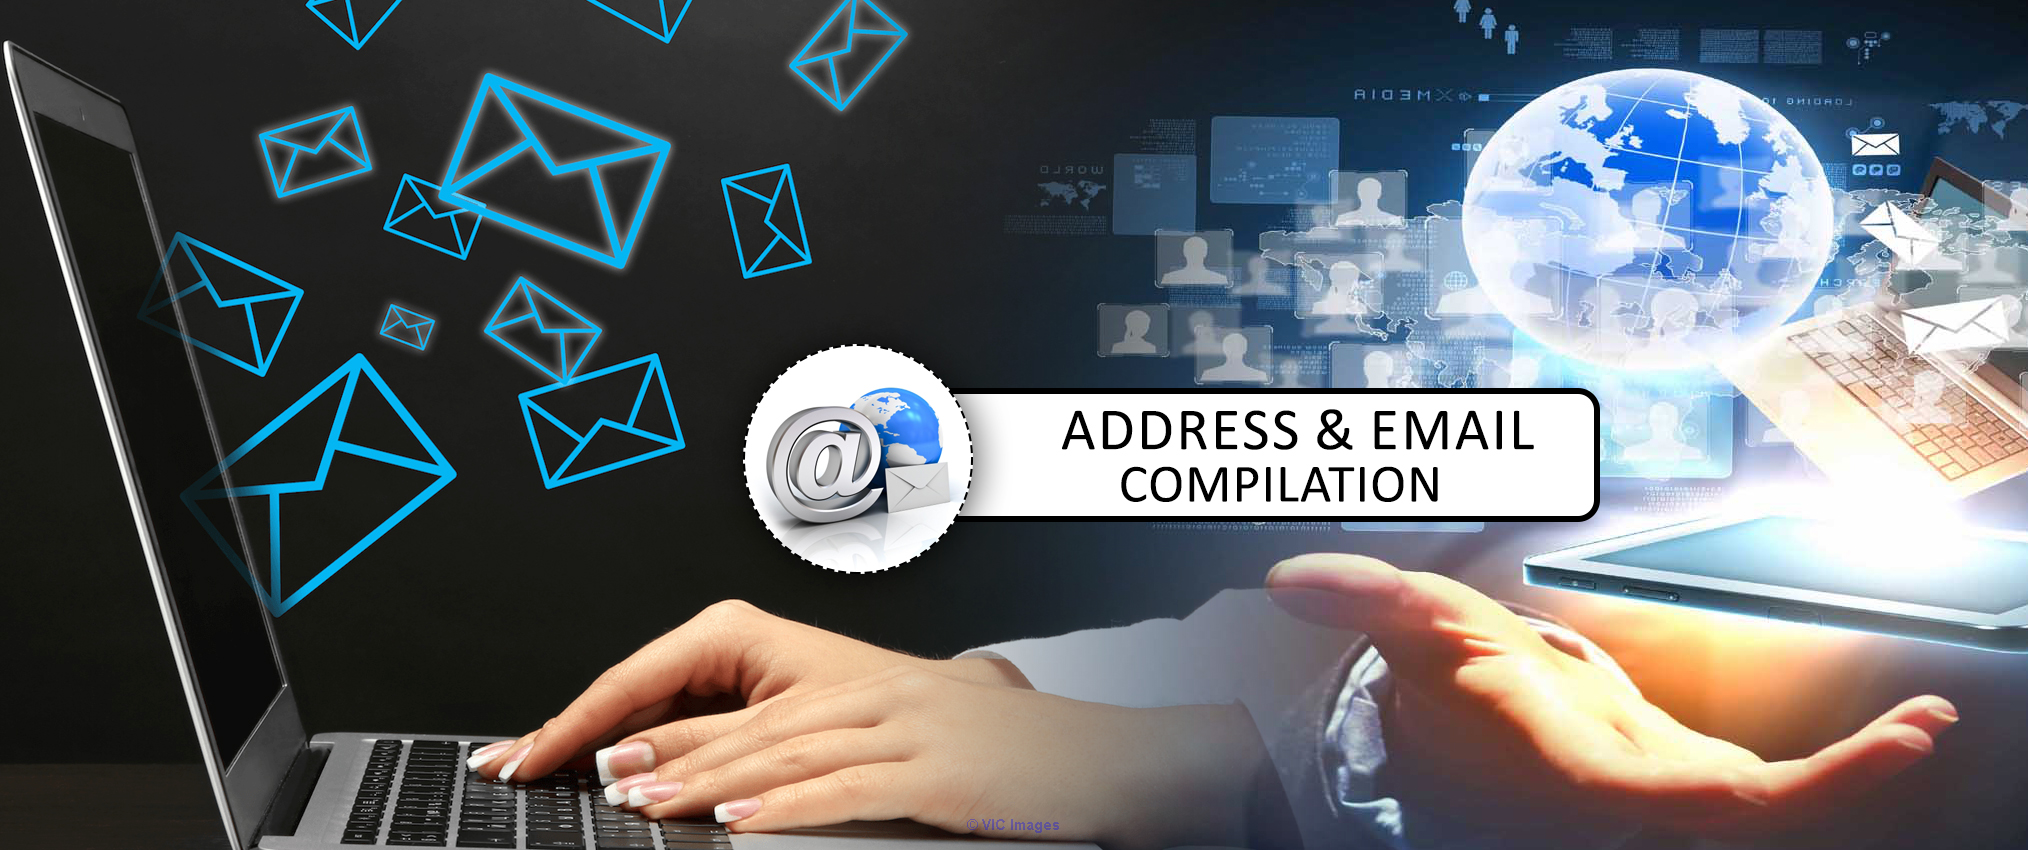 Outsource Address and Email Compilation Services Calgary, Alberta, Canada Classifieds